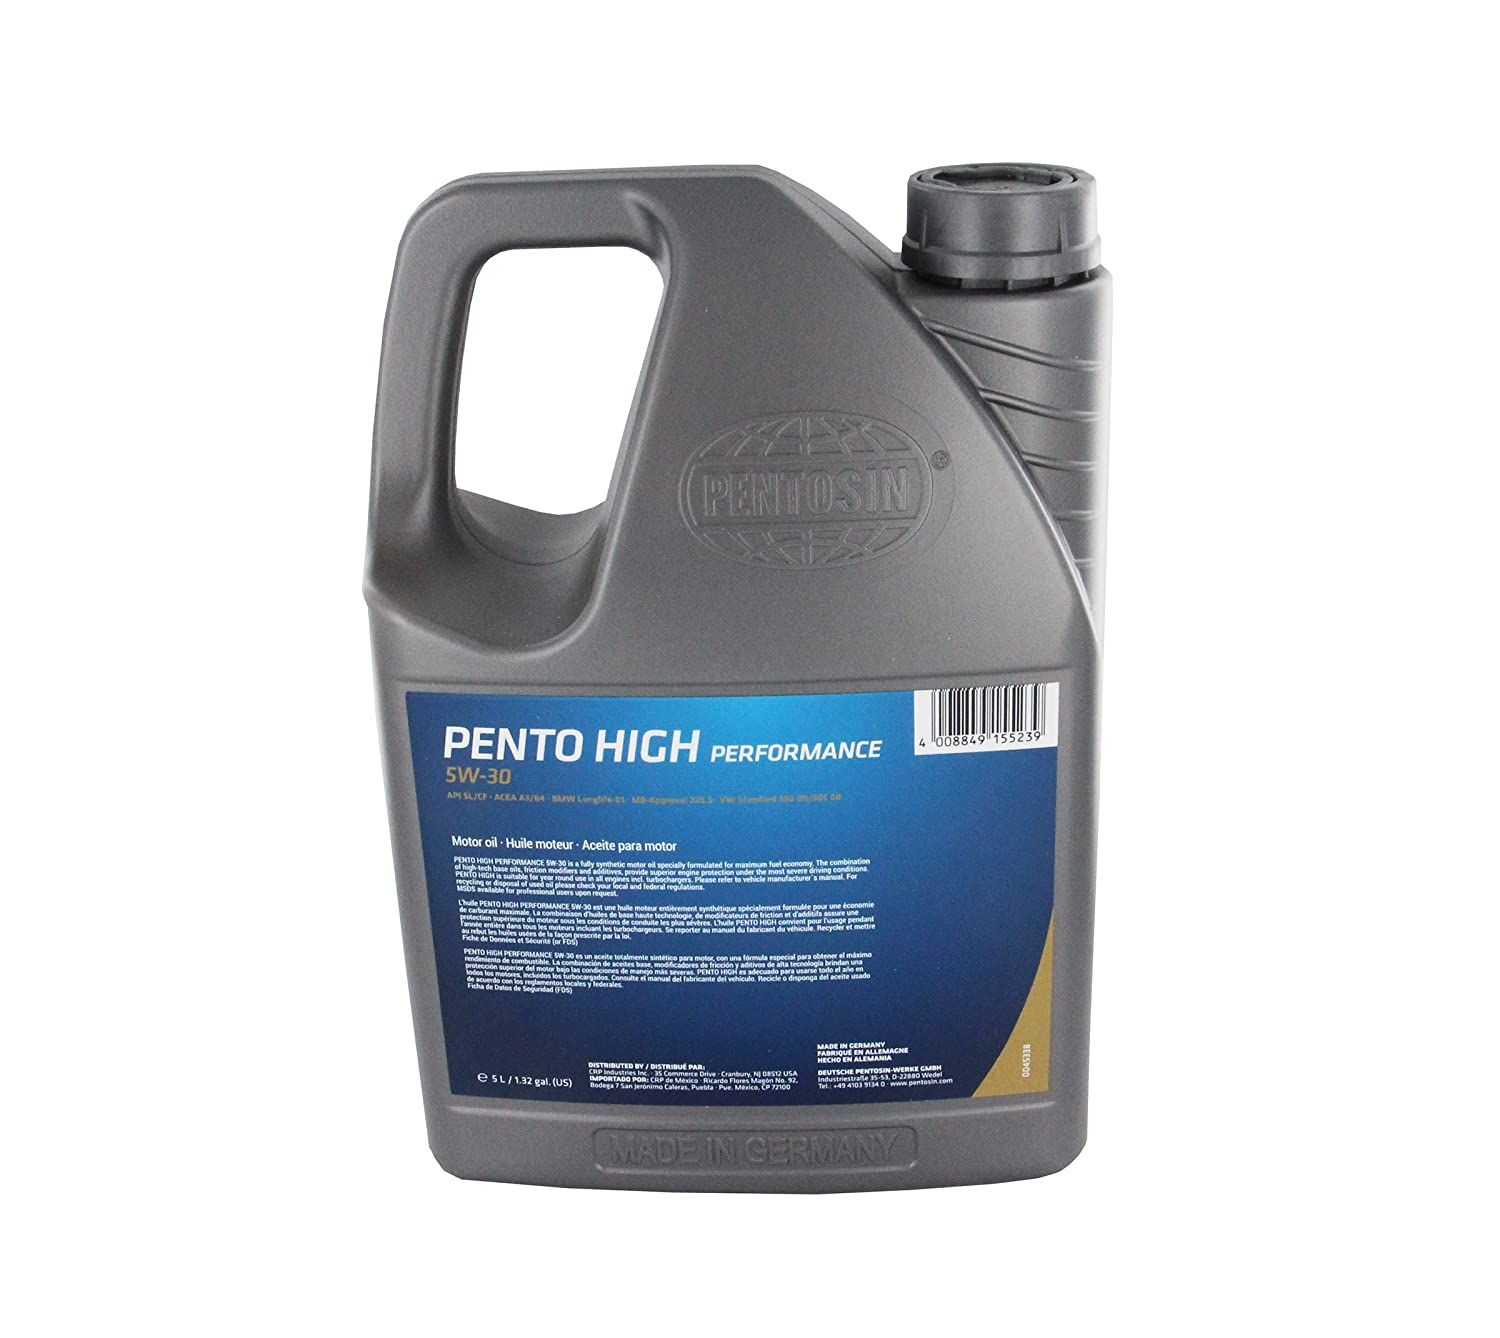 Pentosin 8043206 Pento High Performance 5W-30 Synthetic Motor Oil - 5 Liter